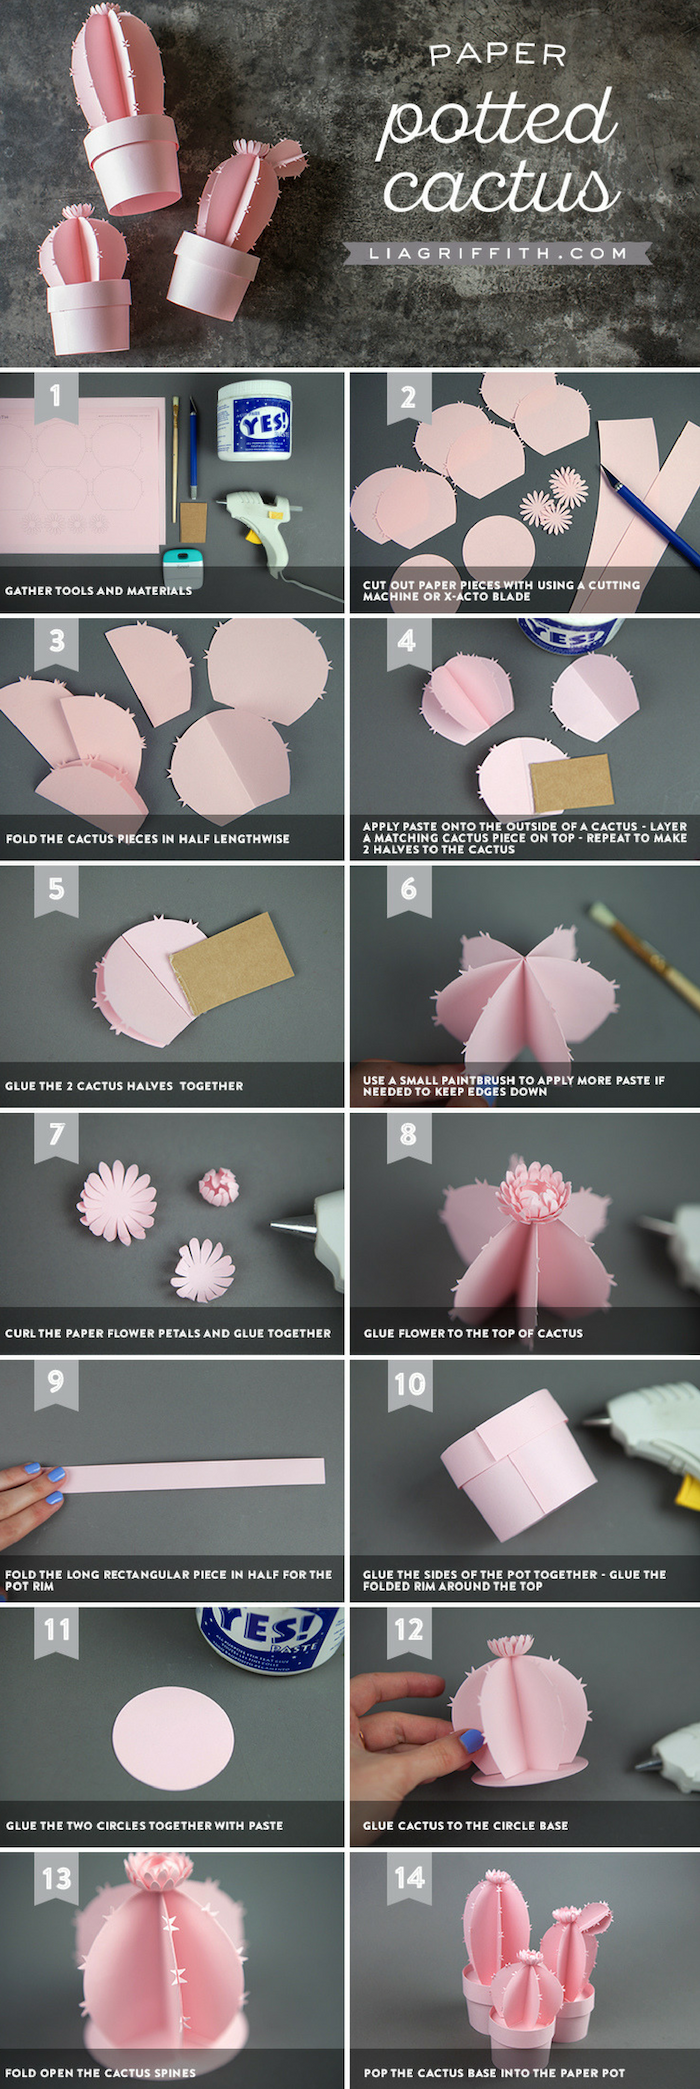 free paper flower templates, photo collage of step by step diy tutorial, how to make a potted cactus out of paper